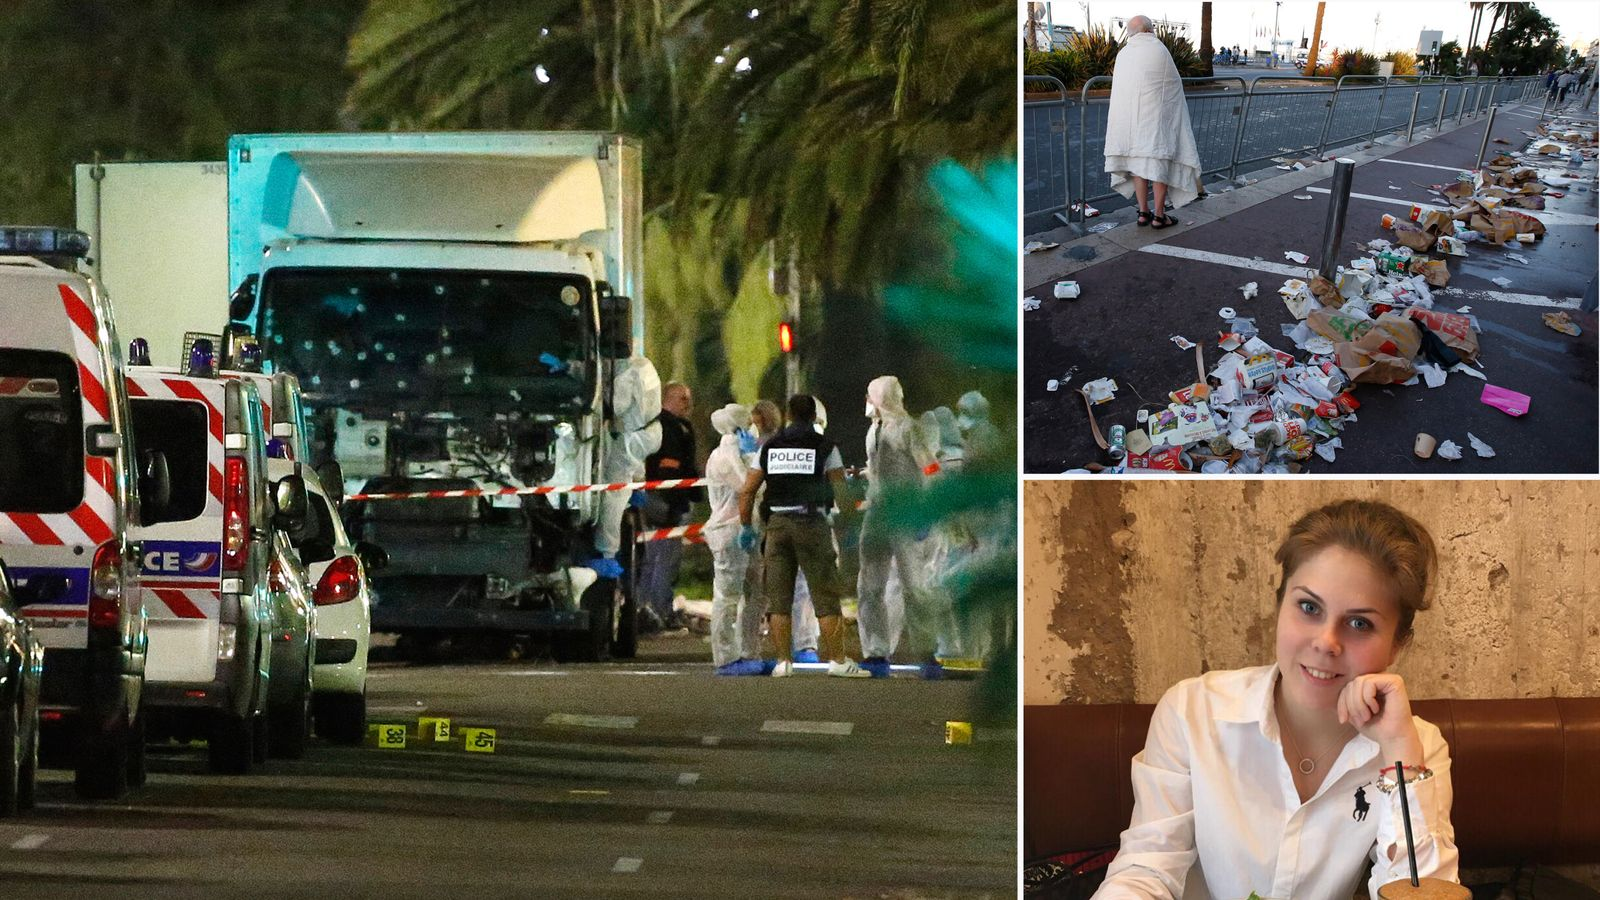 The aftermath of a terrorist attack in Nice, France